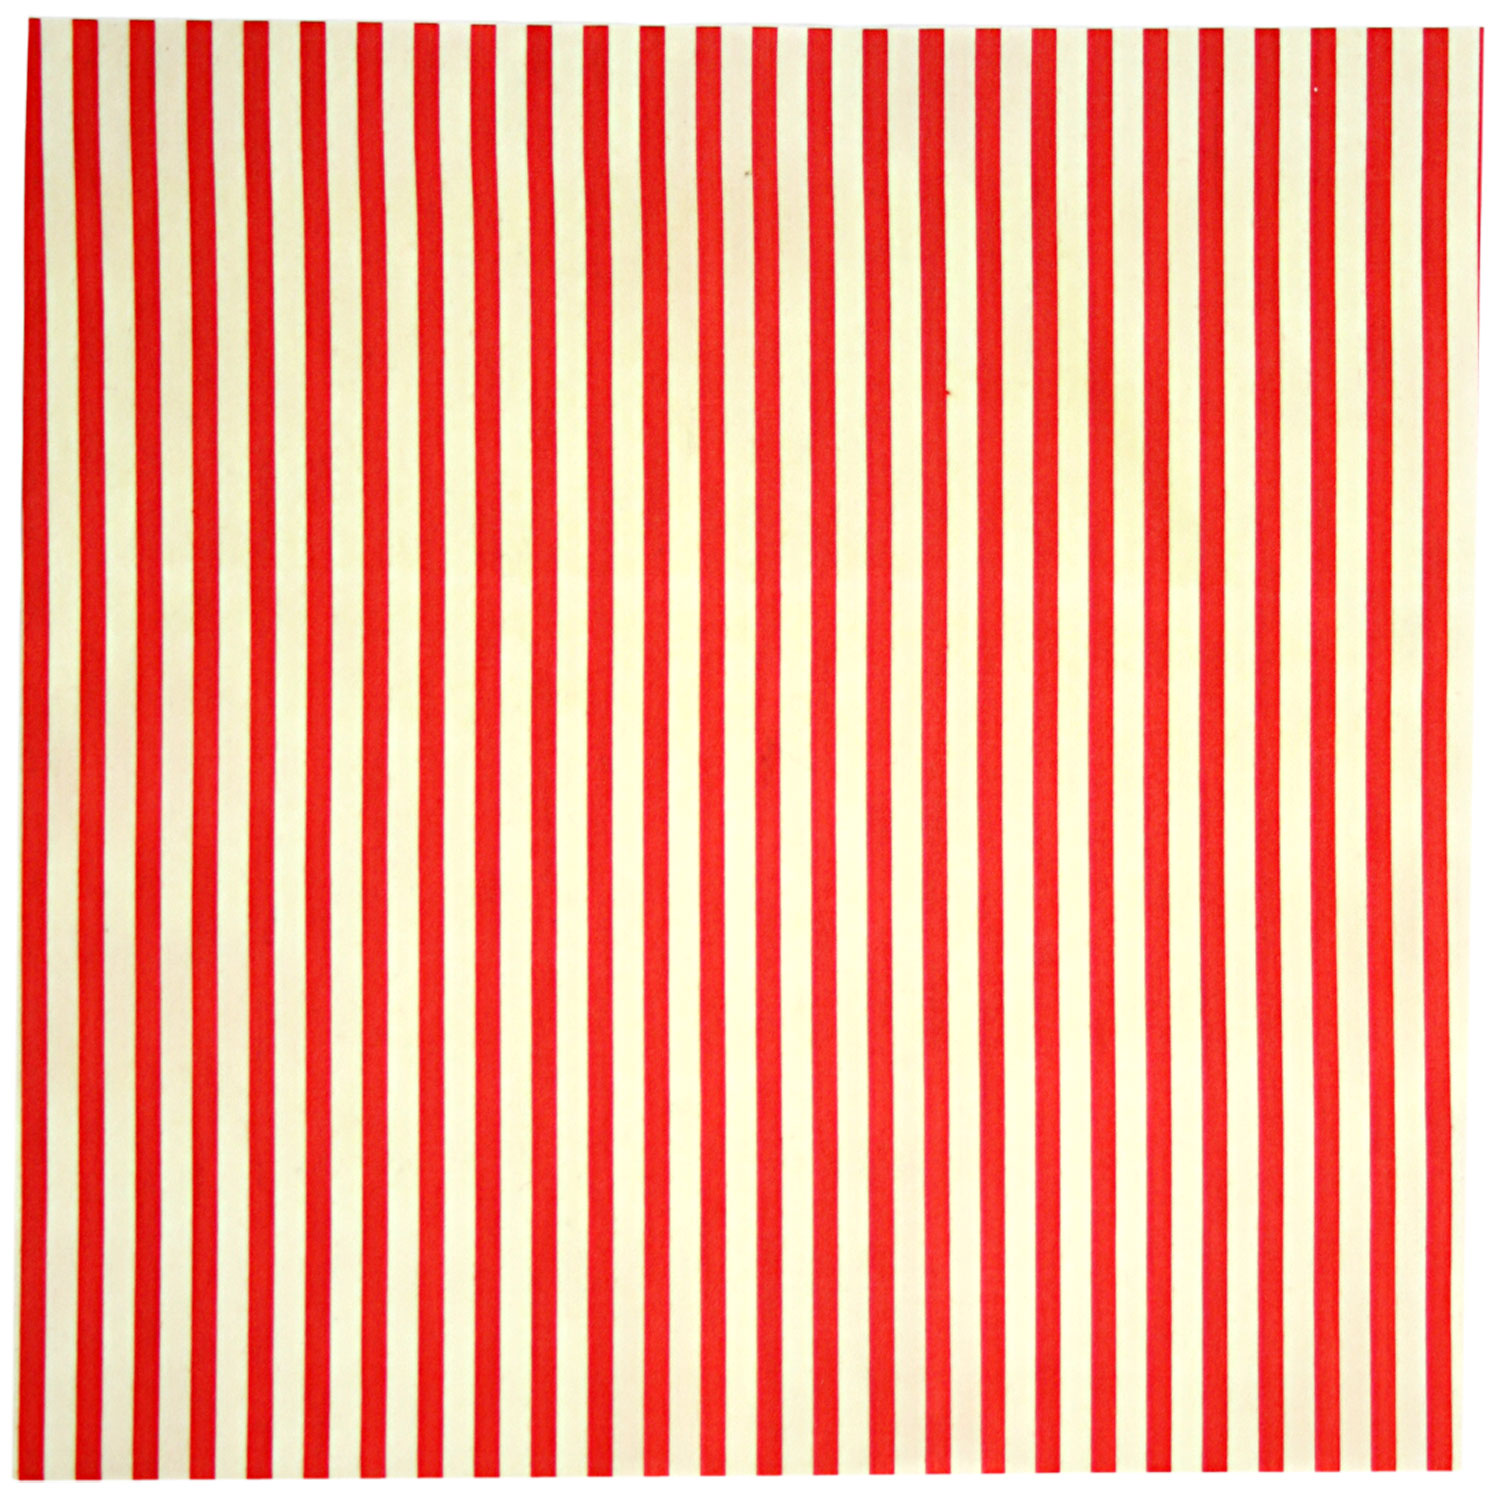 Wildwax Beeswax Cover Cloth Striped Red-White L